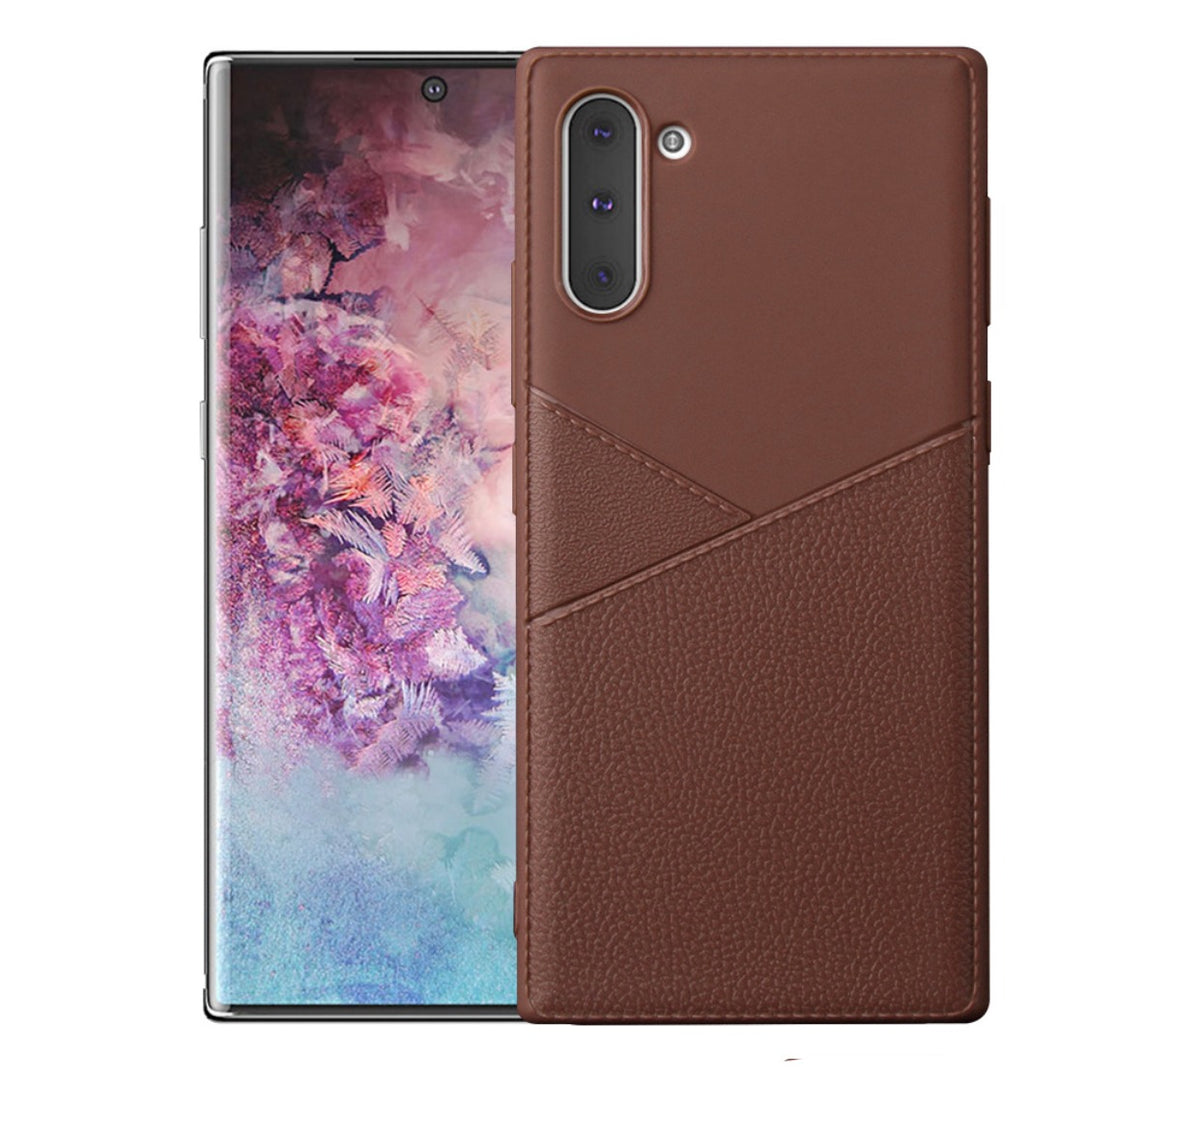 Platinum Design Leather Case Super Thin for Samsung Galaxy Note 10 - Wirelessoneshop